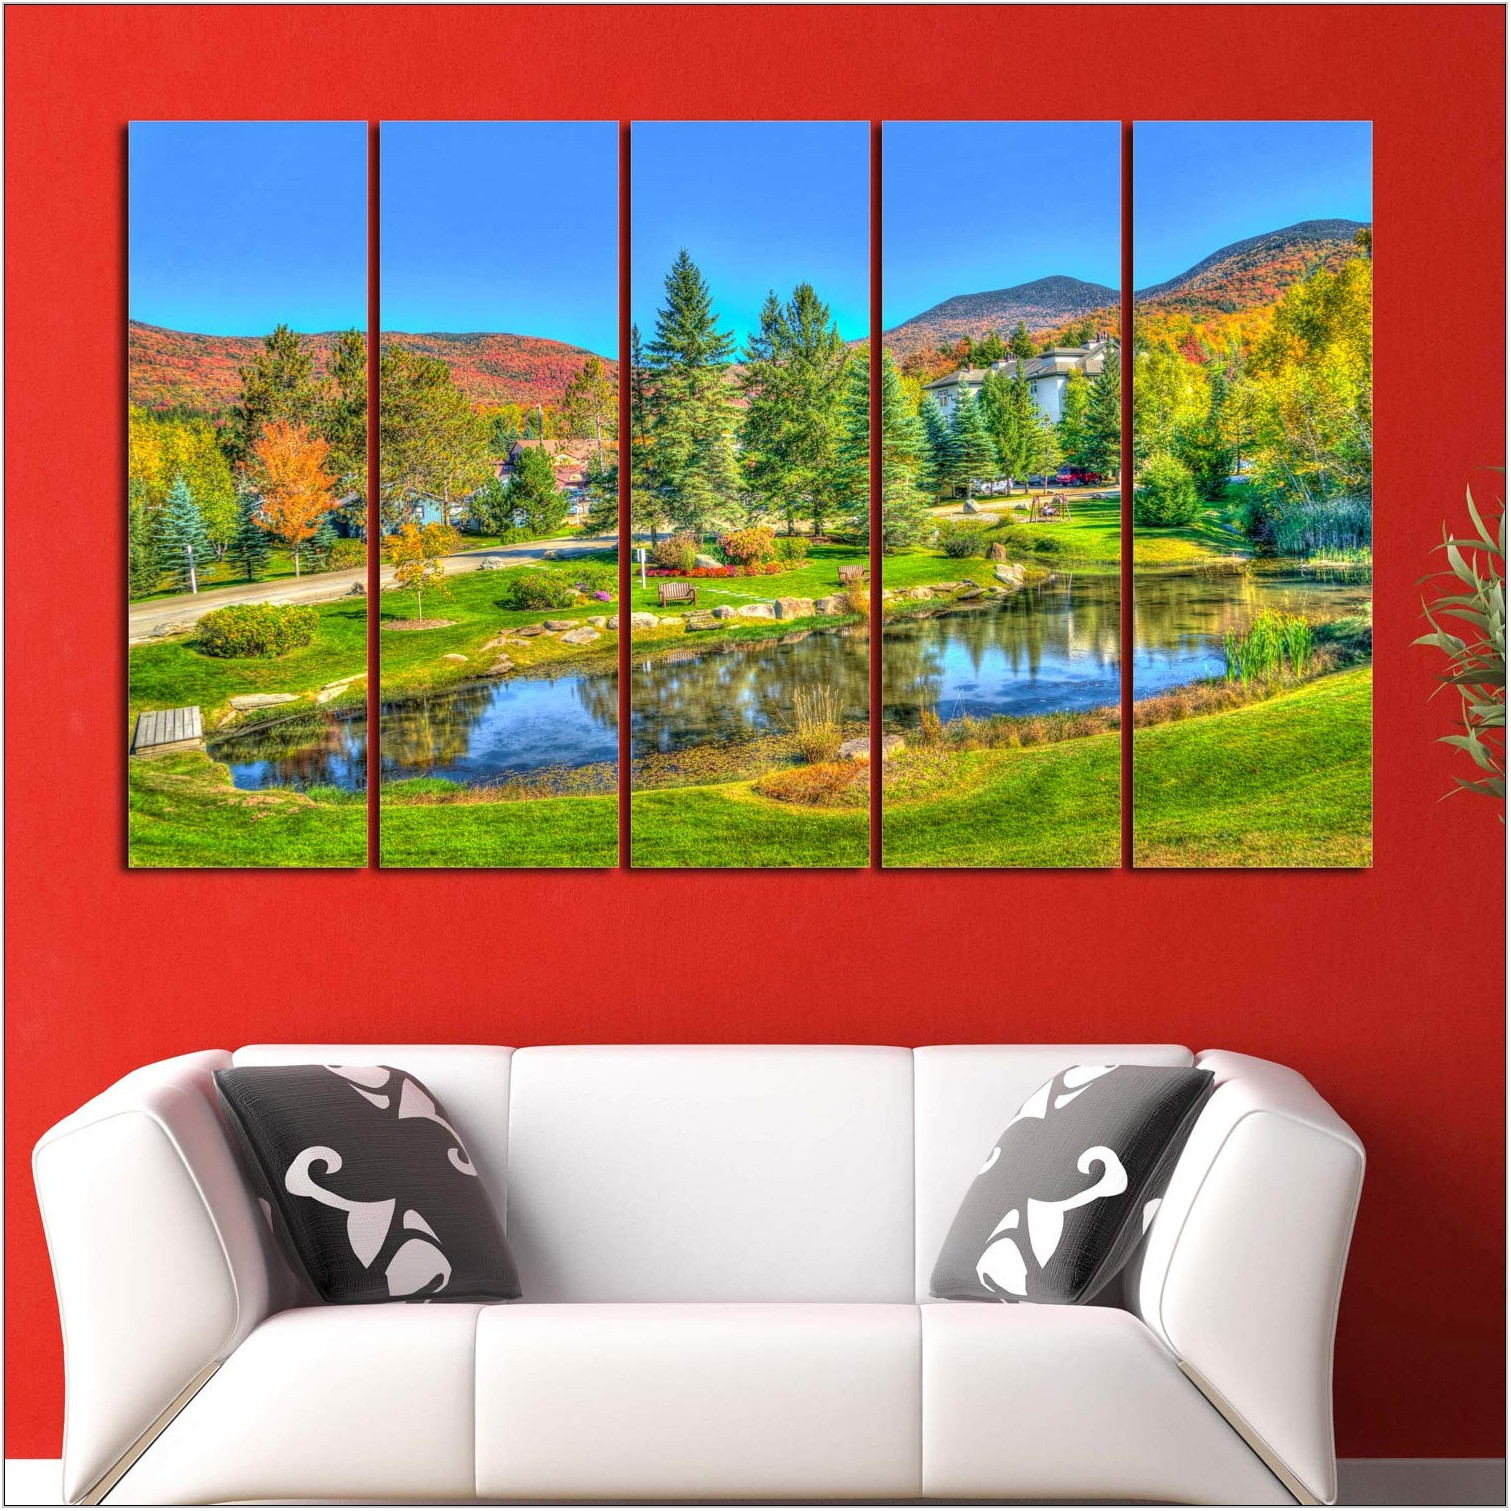 Wall Scenery For Living Room